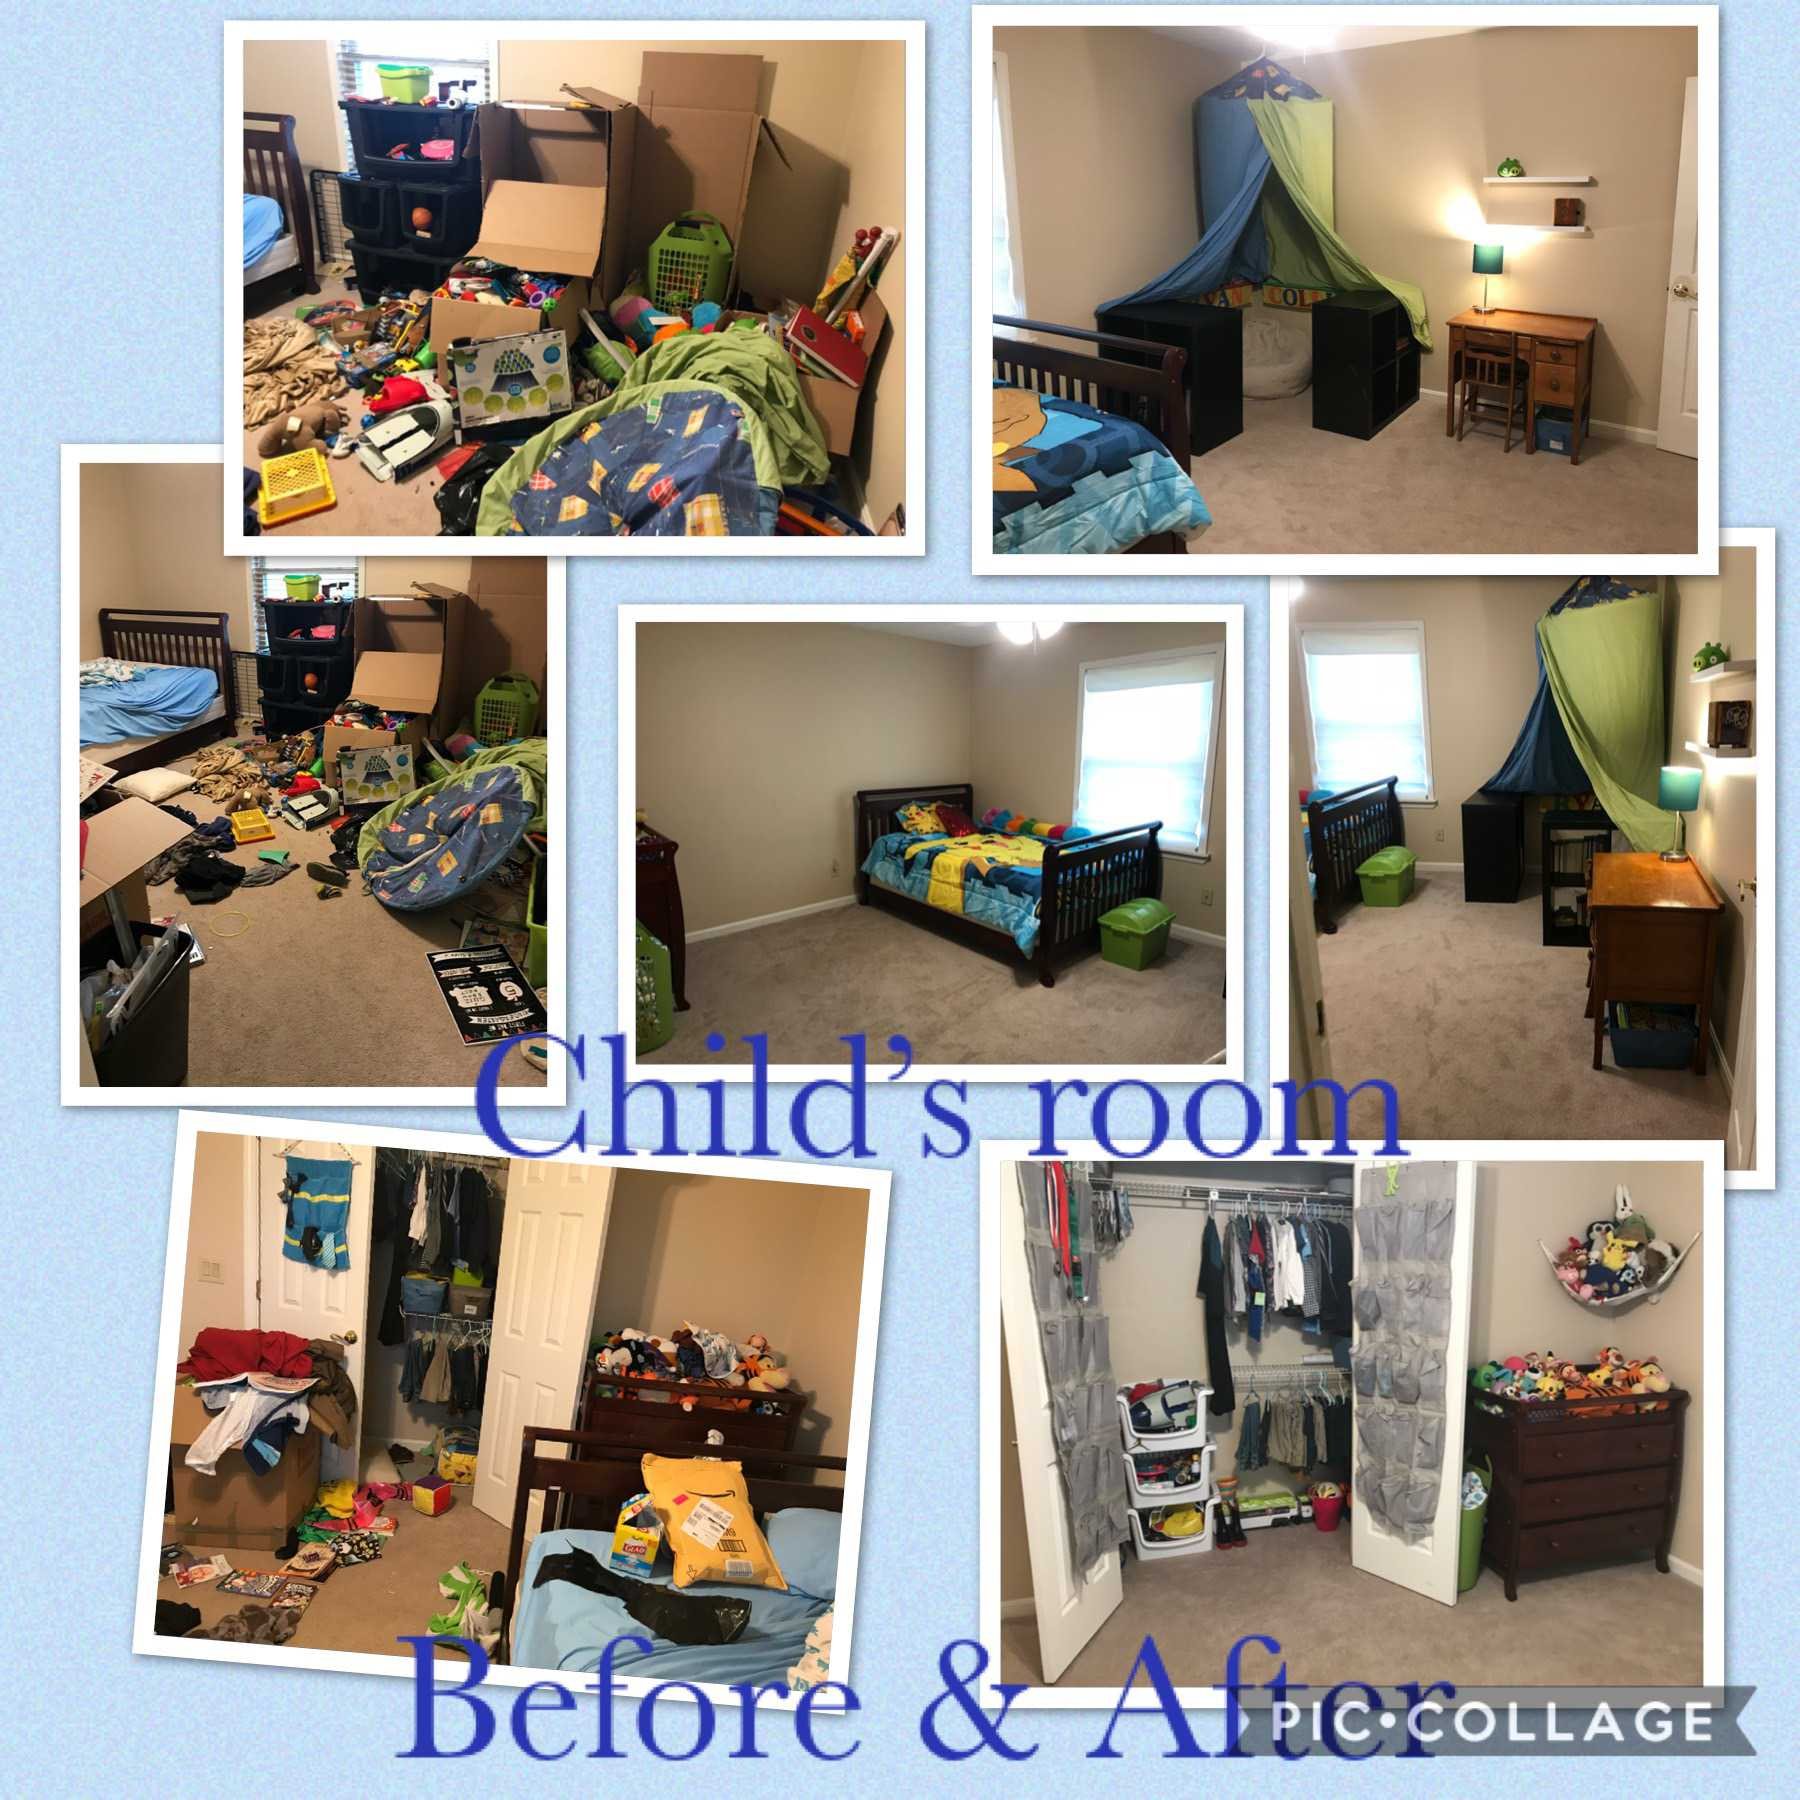 Child's room before and after